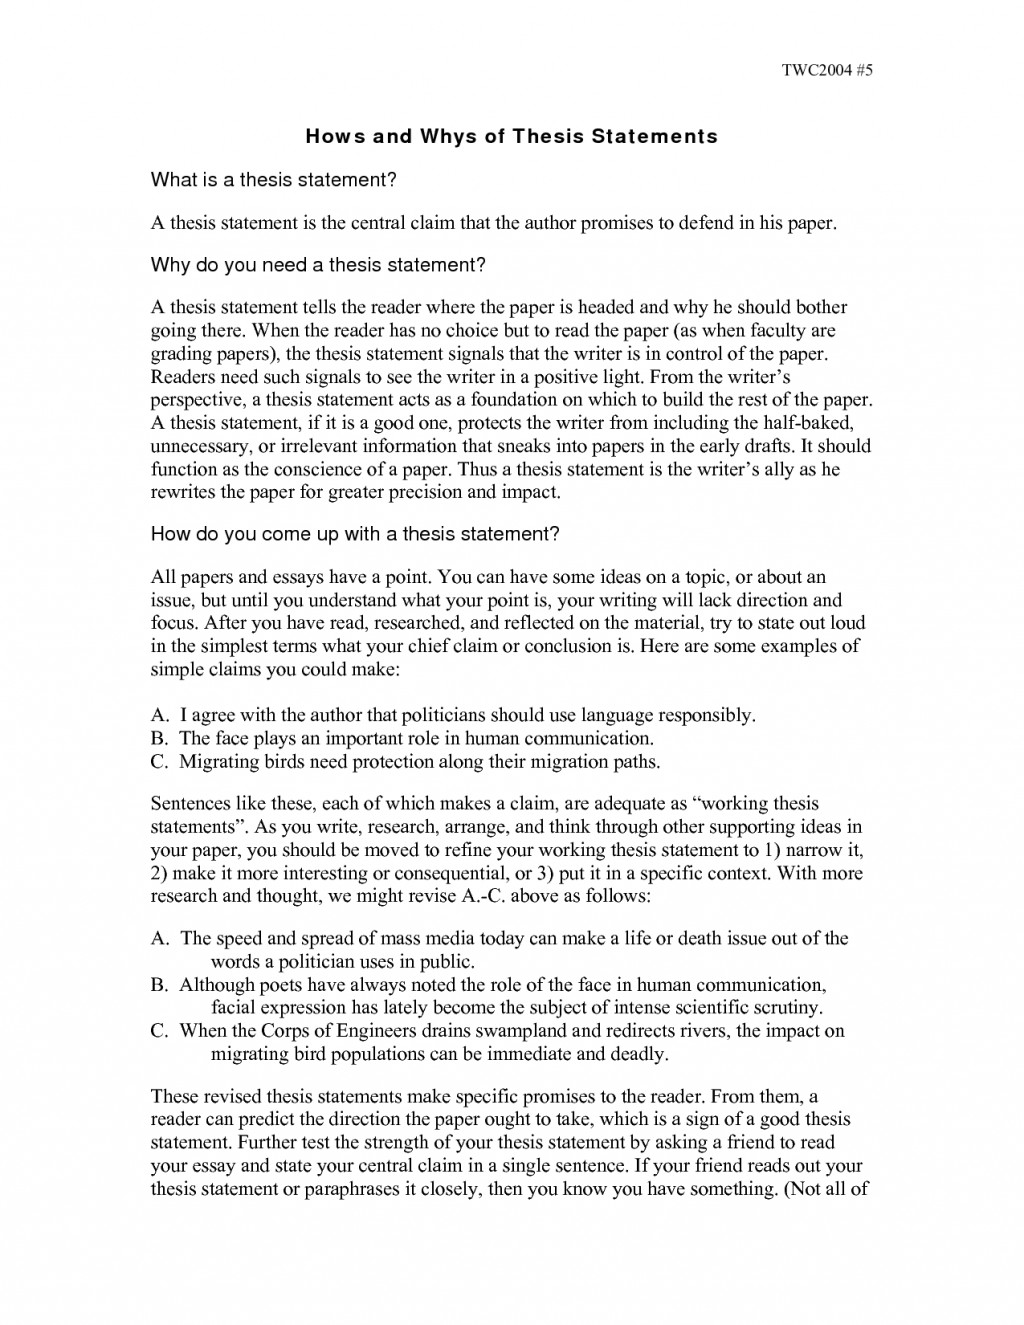 008 Research Paper Argumentative Topics Unique Psychology Large